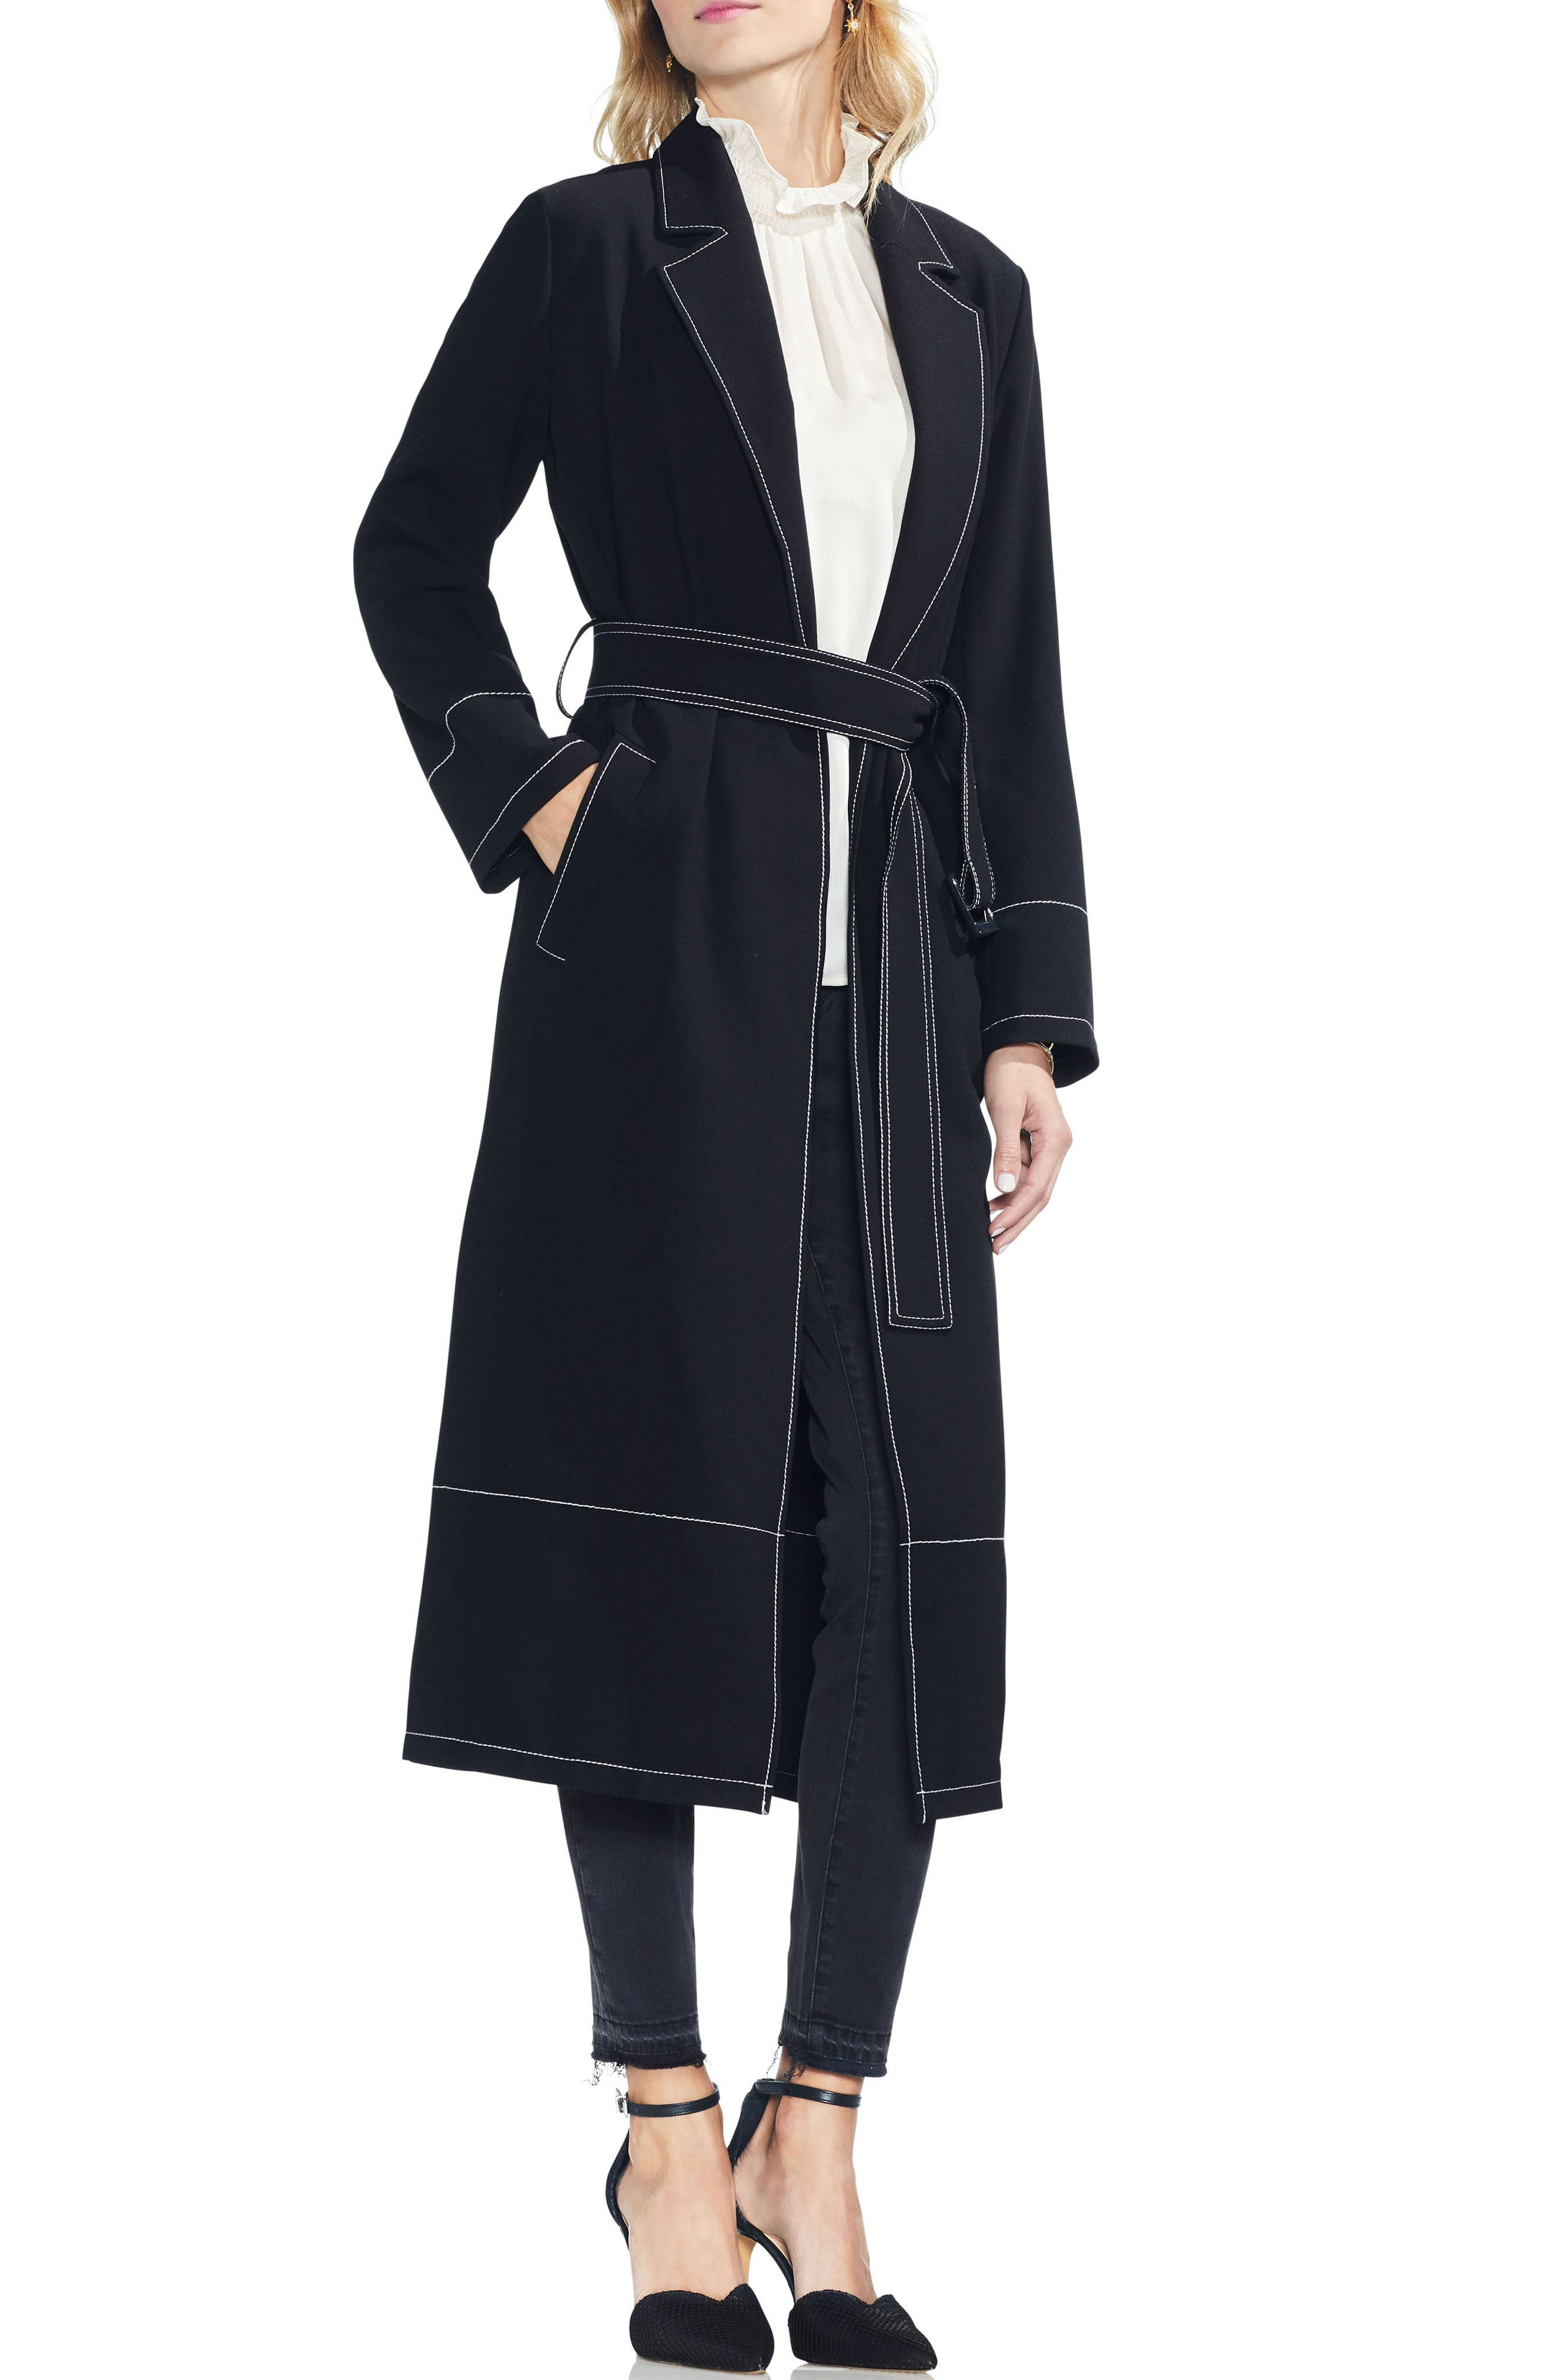 Stetch Crepe Trench Coat VINCE CAMUTO $199